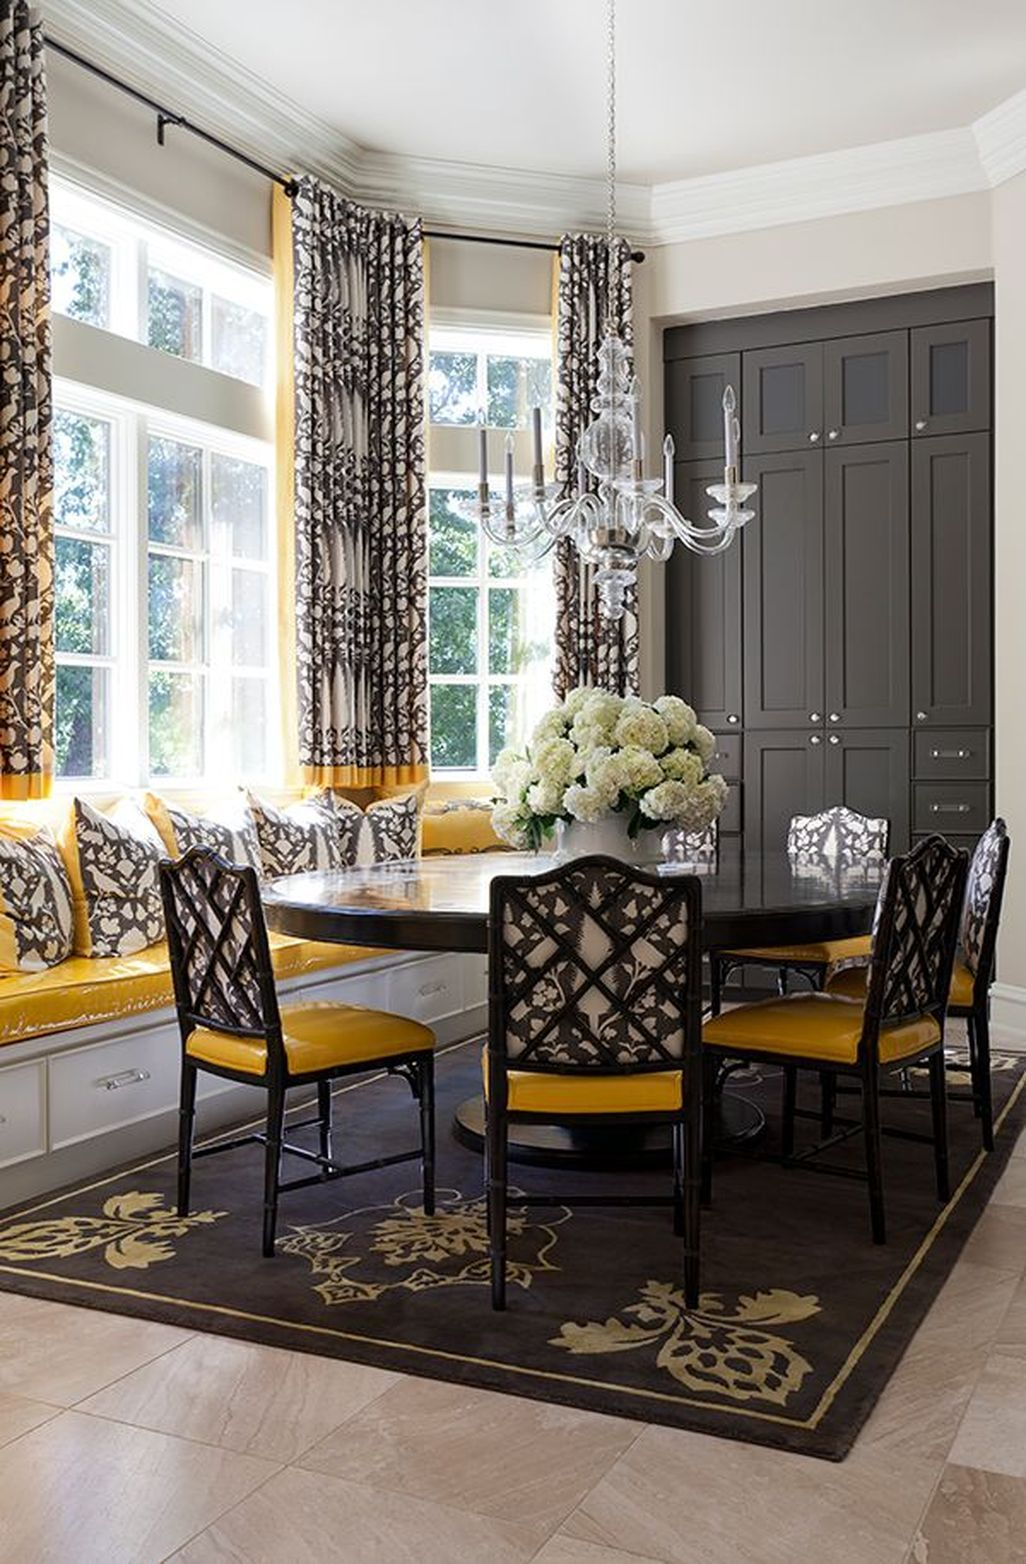 43 Luxurious Black And Gold Dining Room Ideas For Inspiration